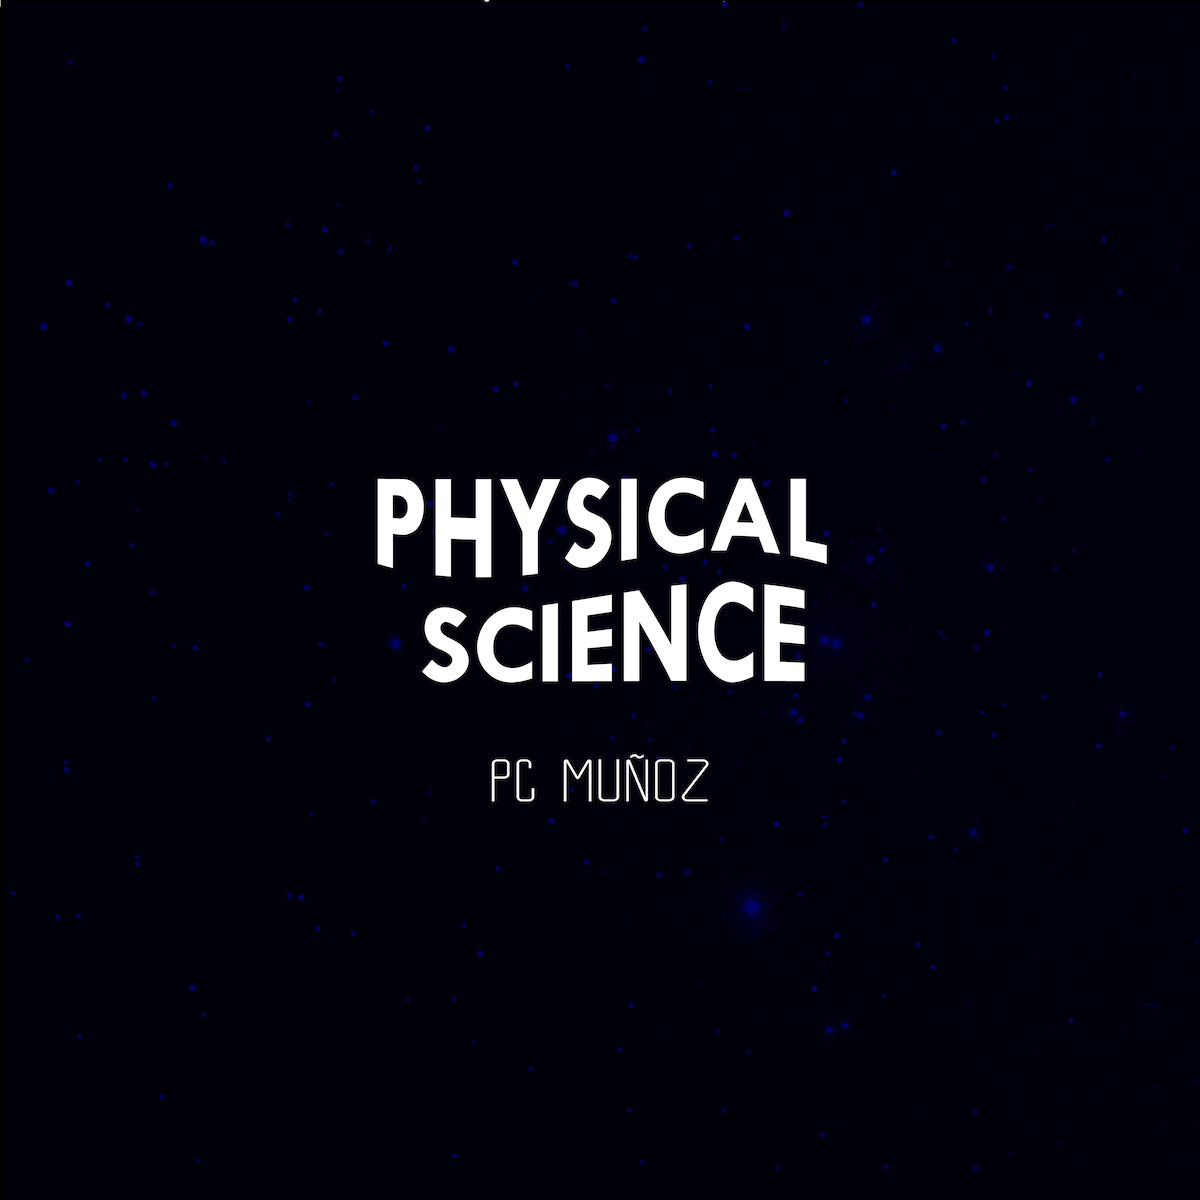 PC Munoz Physical Science album cover